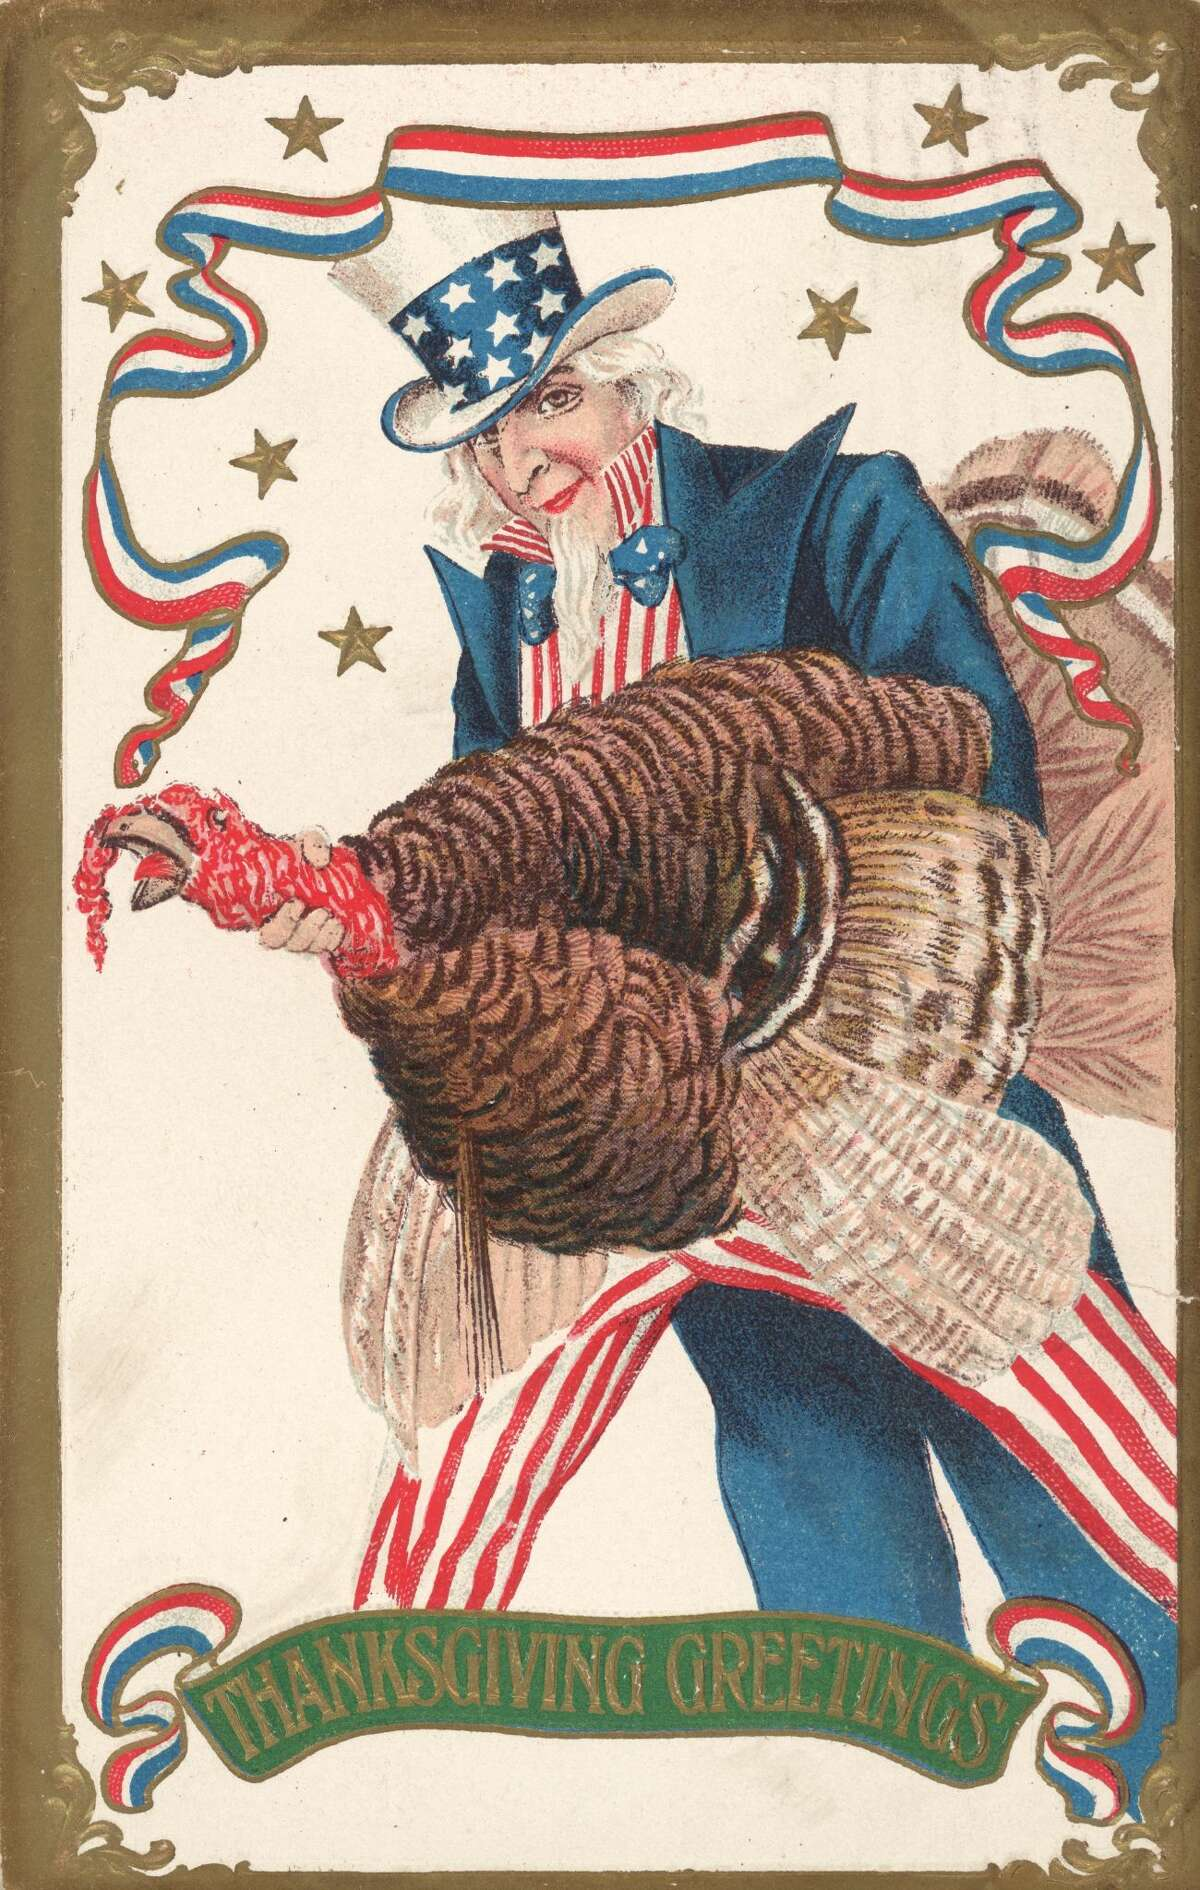 Uncle Sam holds a large live turkey in a postcard, circa 1850.